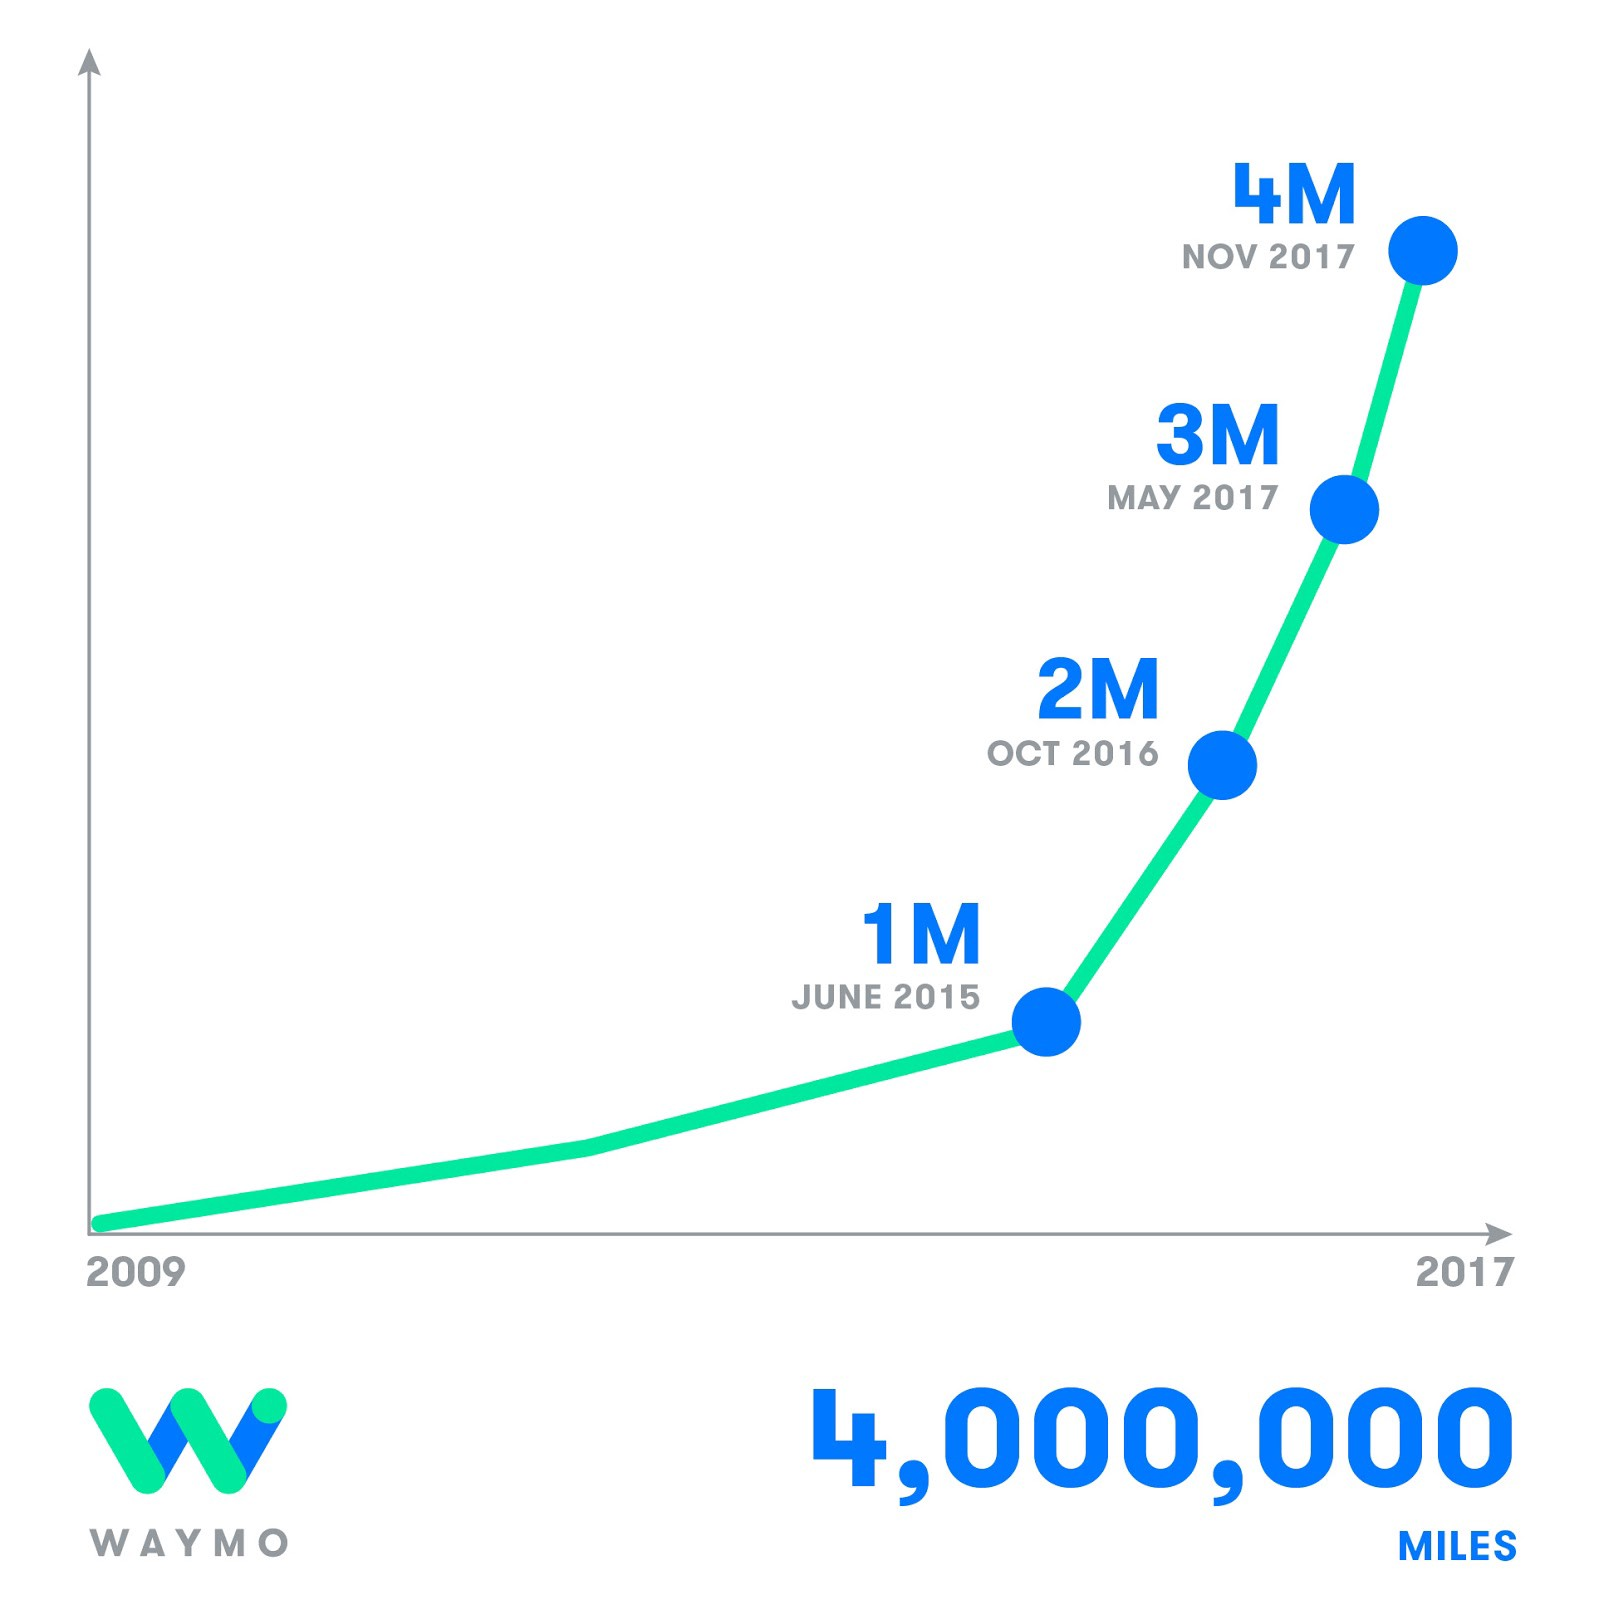 Waymo marks a major self-driving milestone